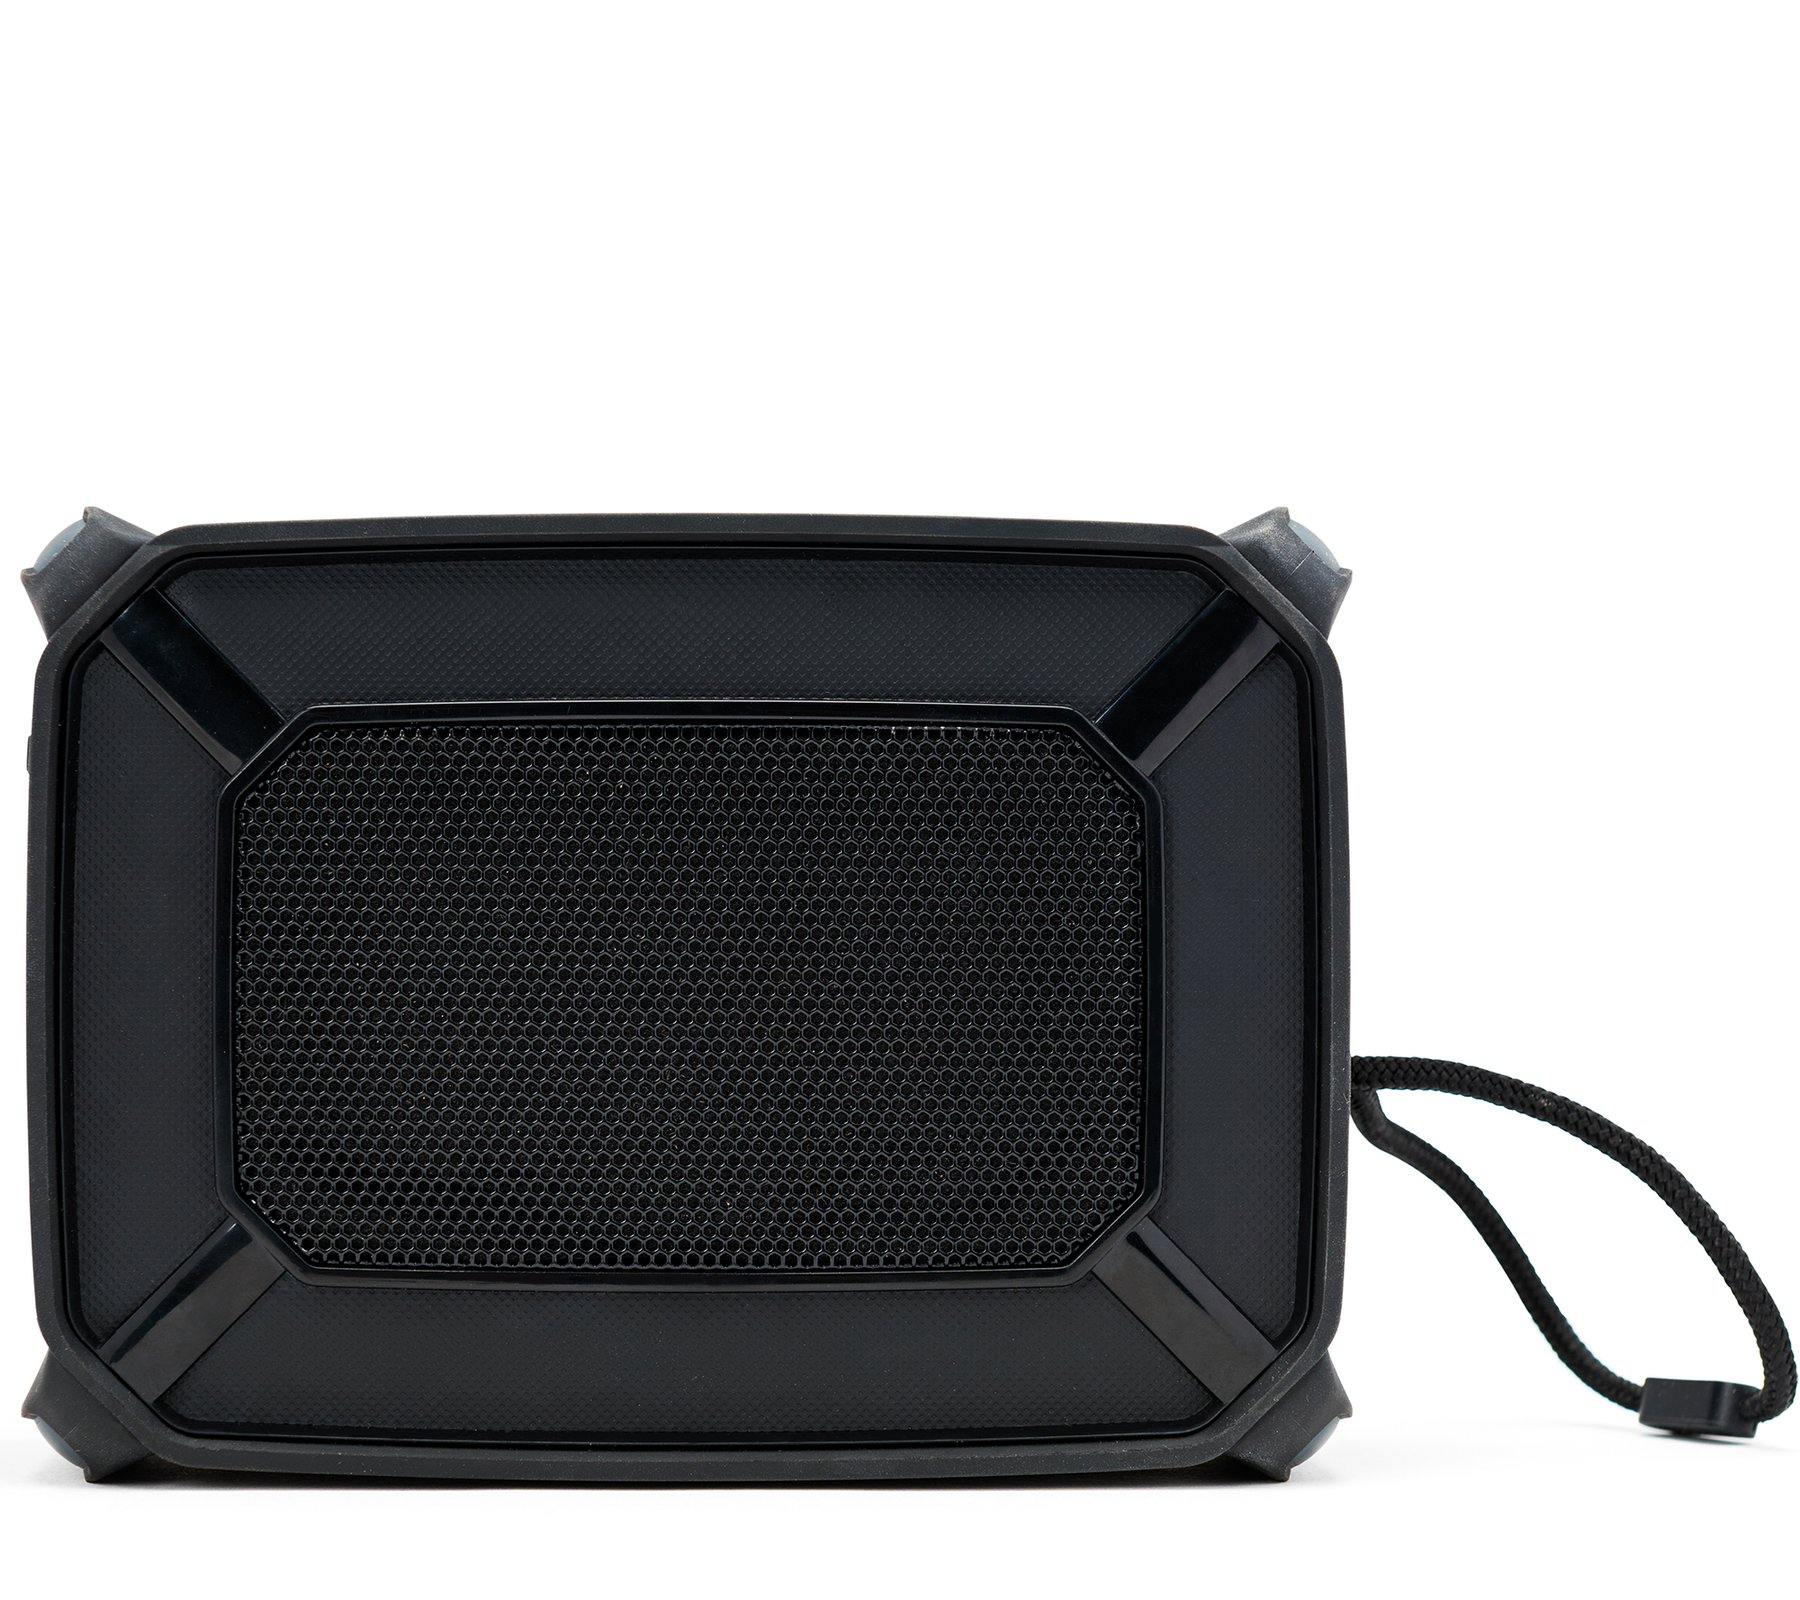 iHome iBT374 Weather Tough™ Bluetooth Speaker + USB Charging